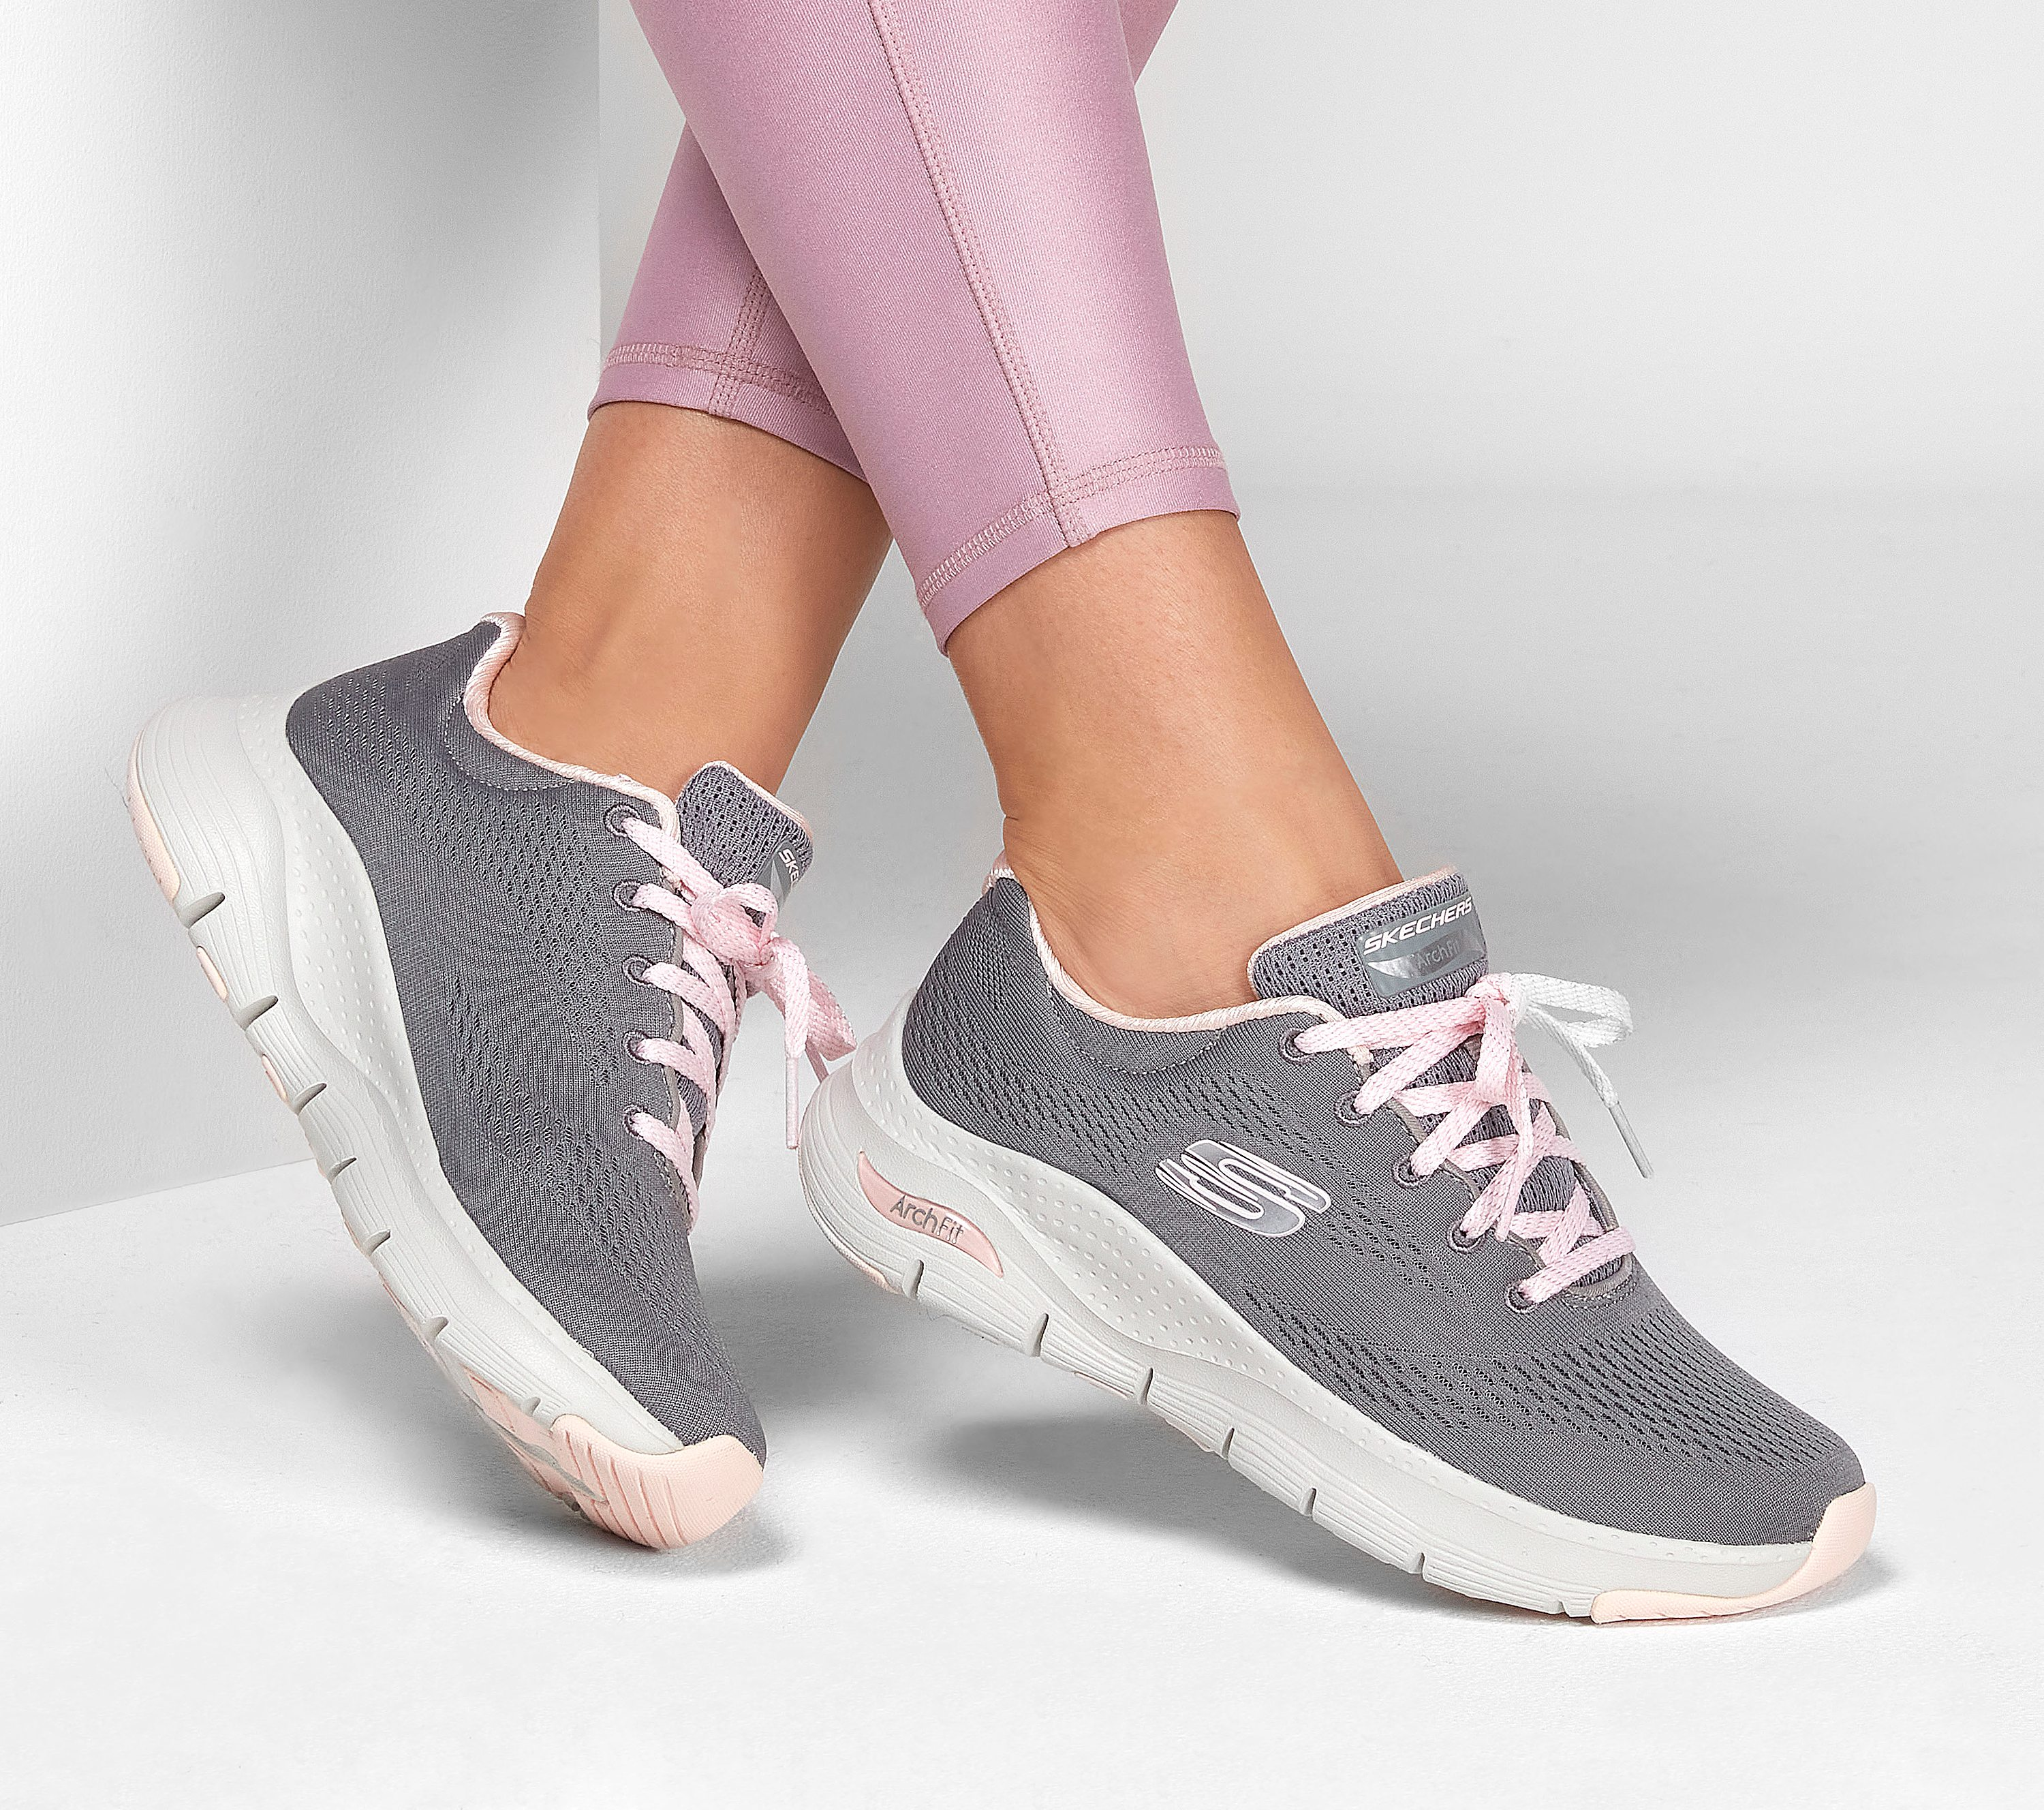 Shop the Skechers Arch Fit - Big Appeal